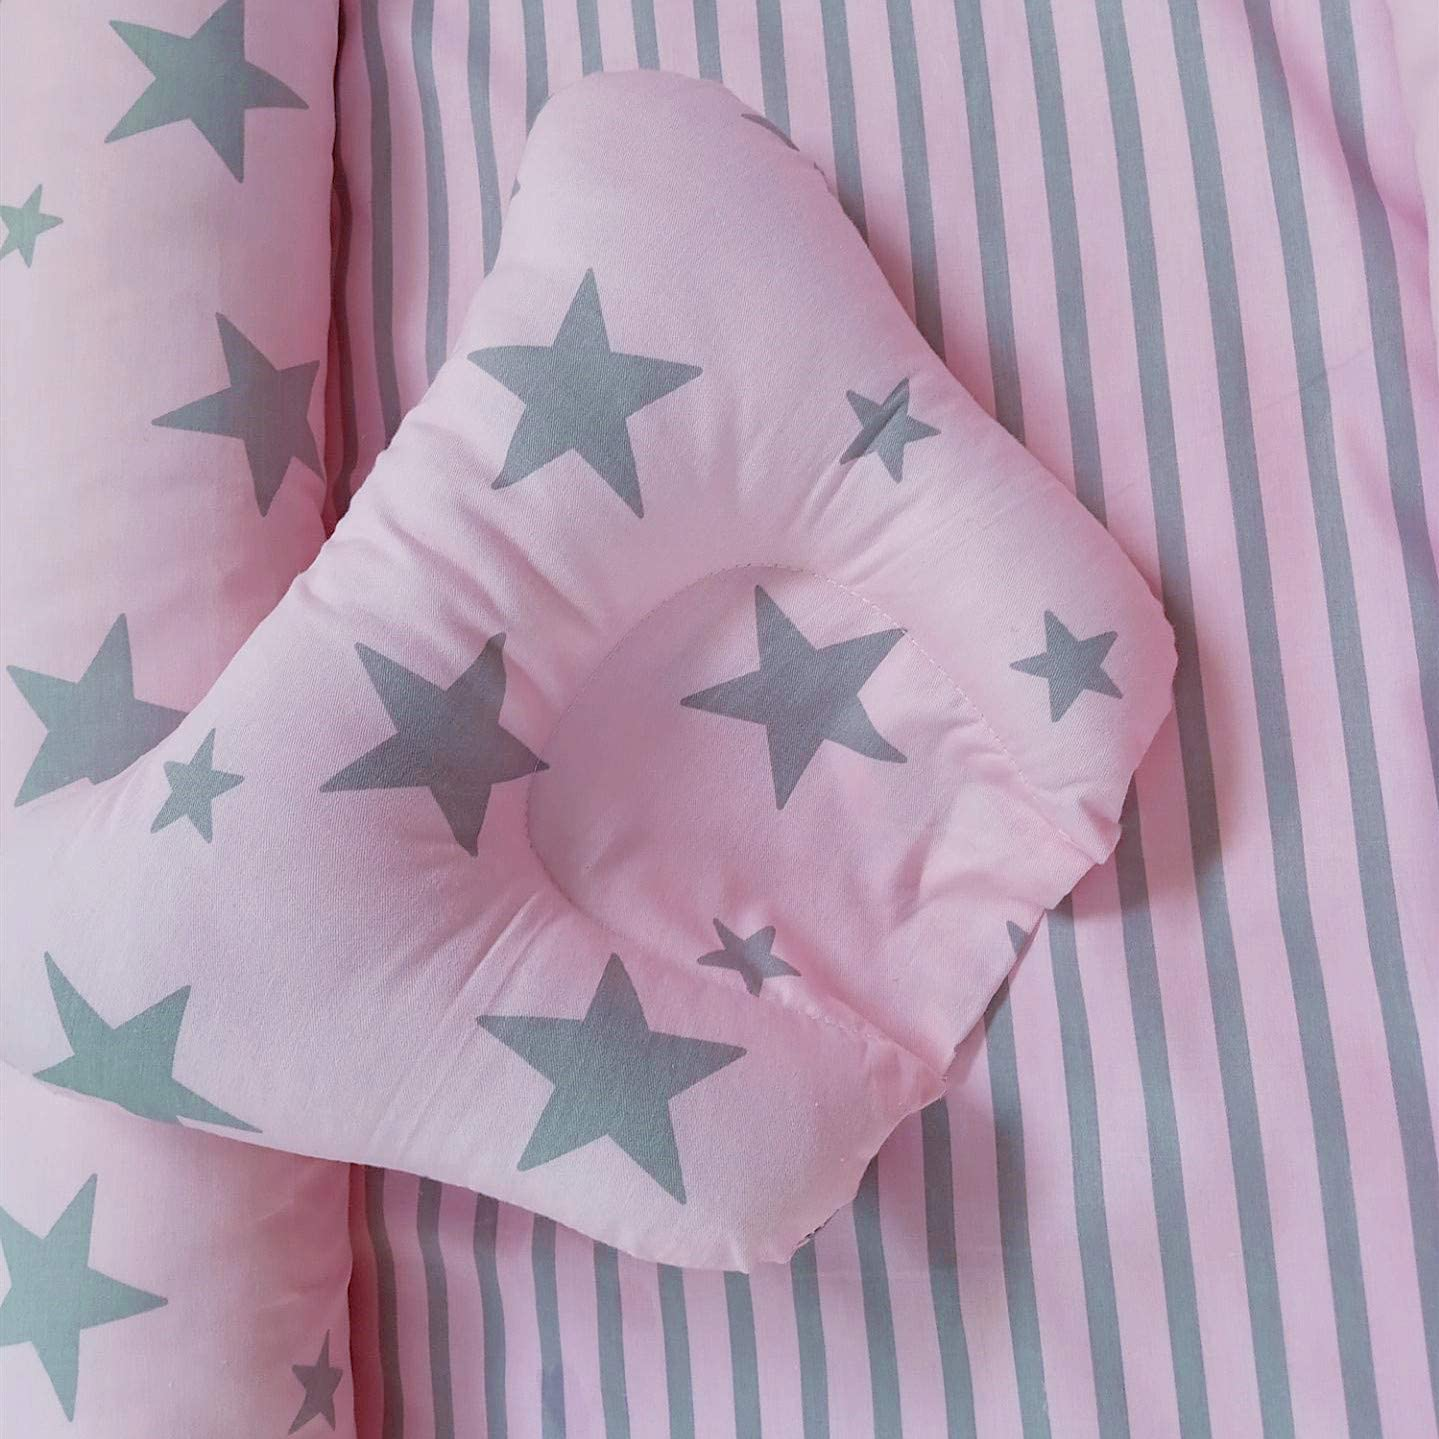 Ustide Baby Bassinet for Bed Pink Ice-cream Design Baby Lounger Breathable Hypoallergenic Co-Sleeping Baby Bed 100/% Cotton Portable Crib for Bedroom//Travel 3 Pieces